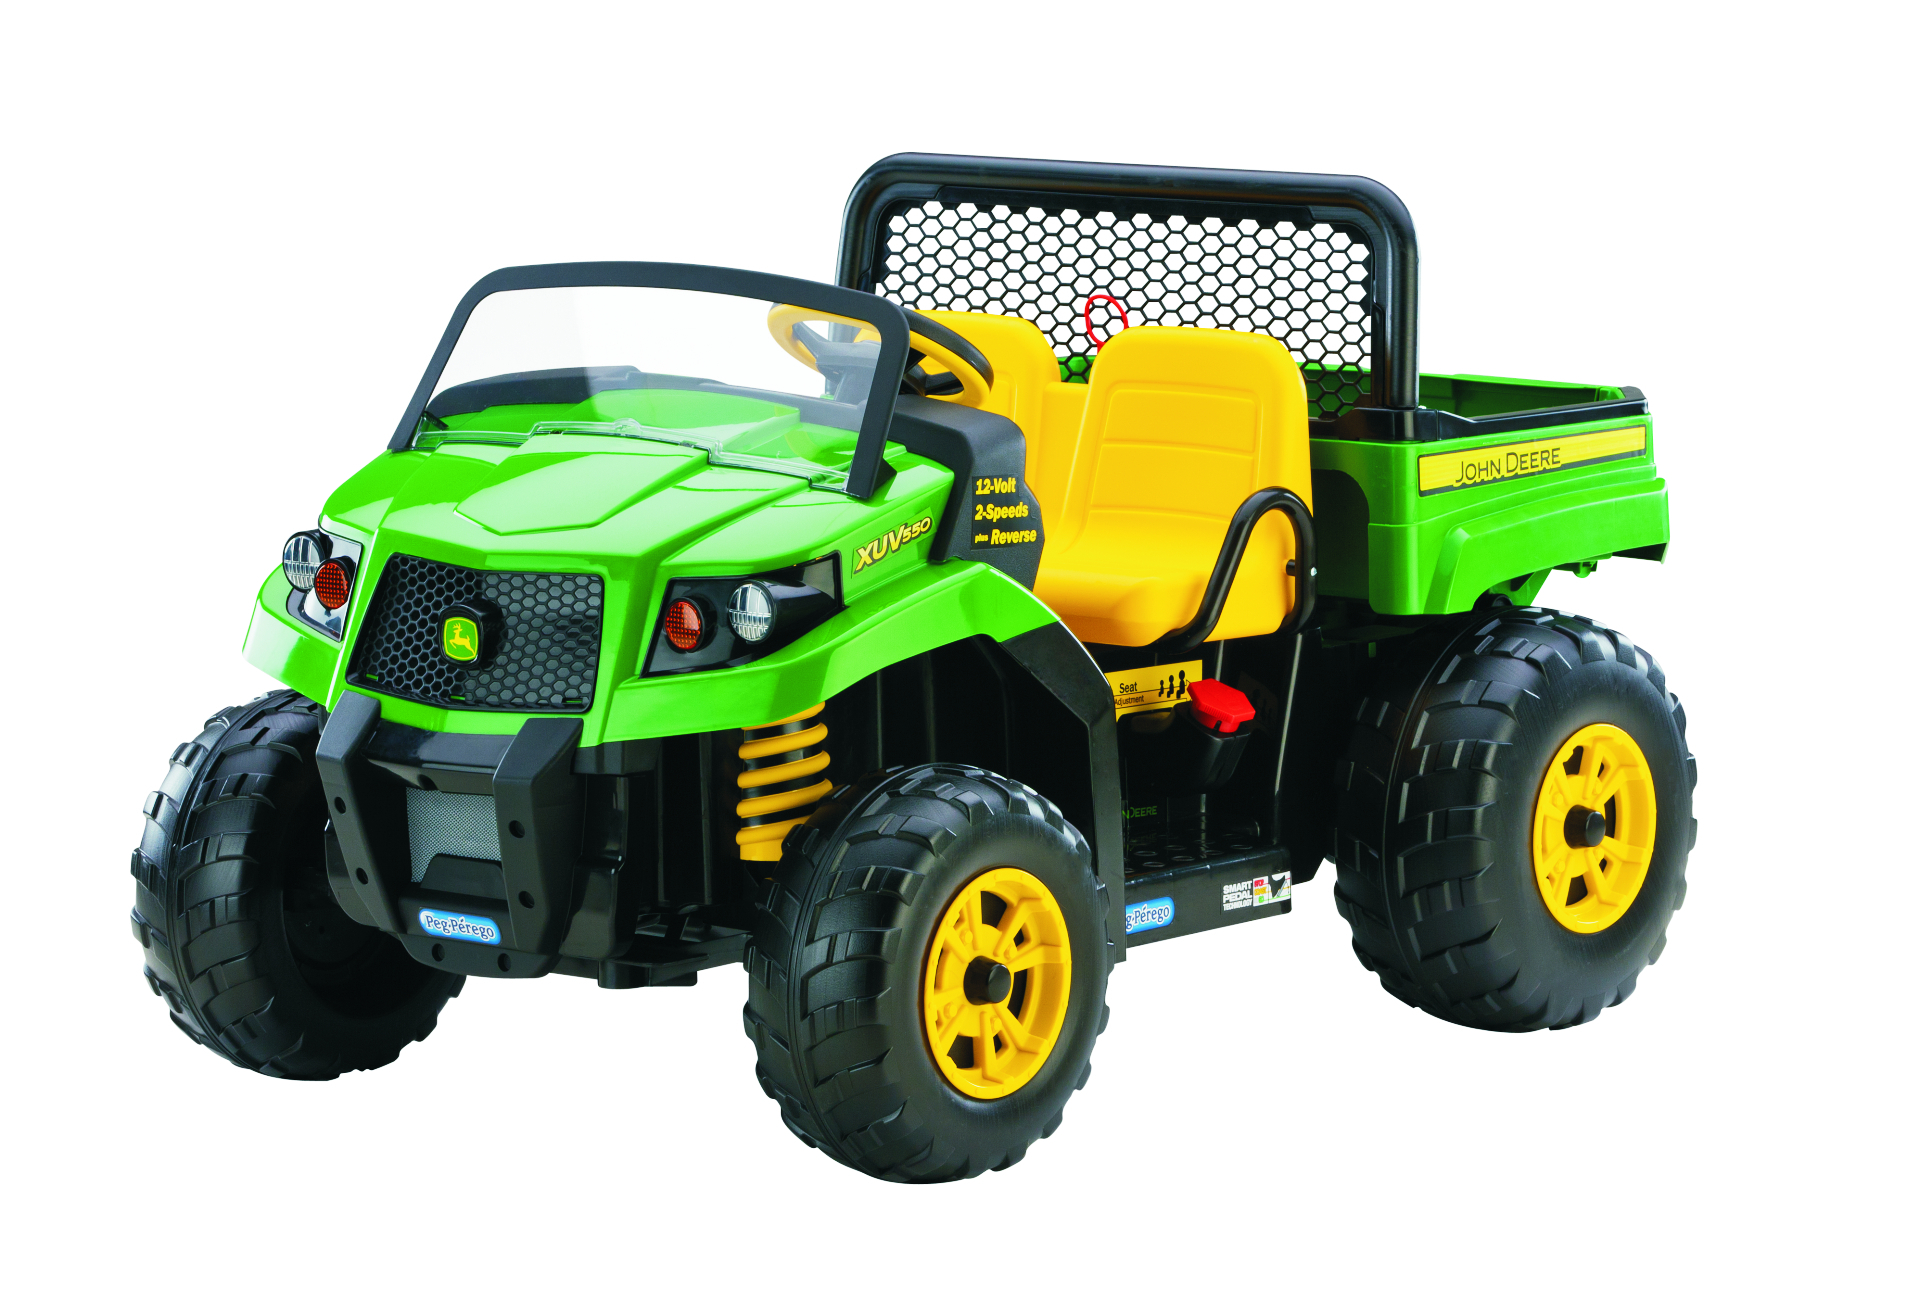 topworldauto photos of john deere gator photo galleries. Black Bedroom Furniture Sets. Home Design Ideas